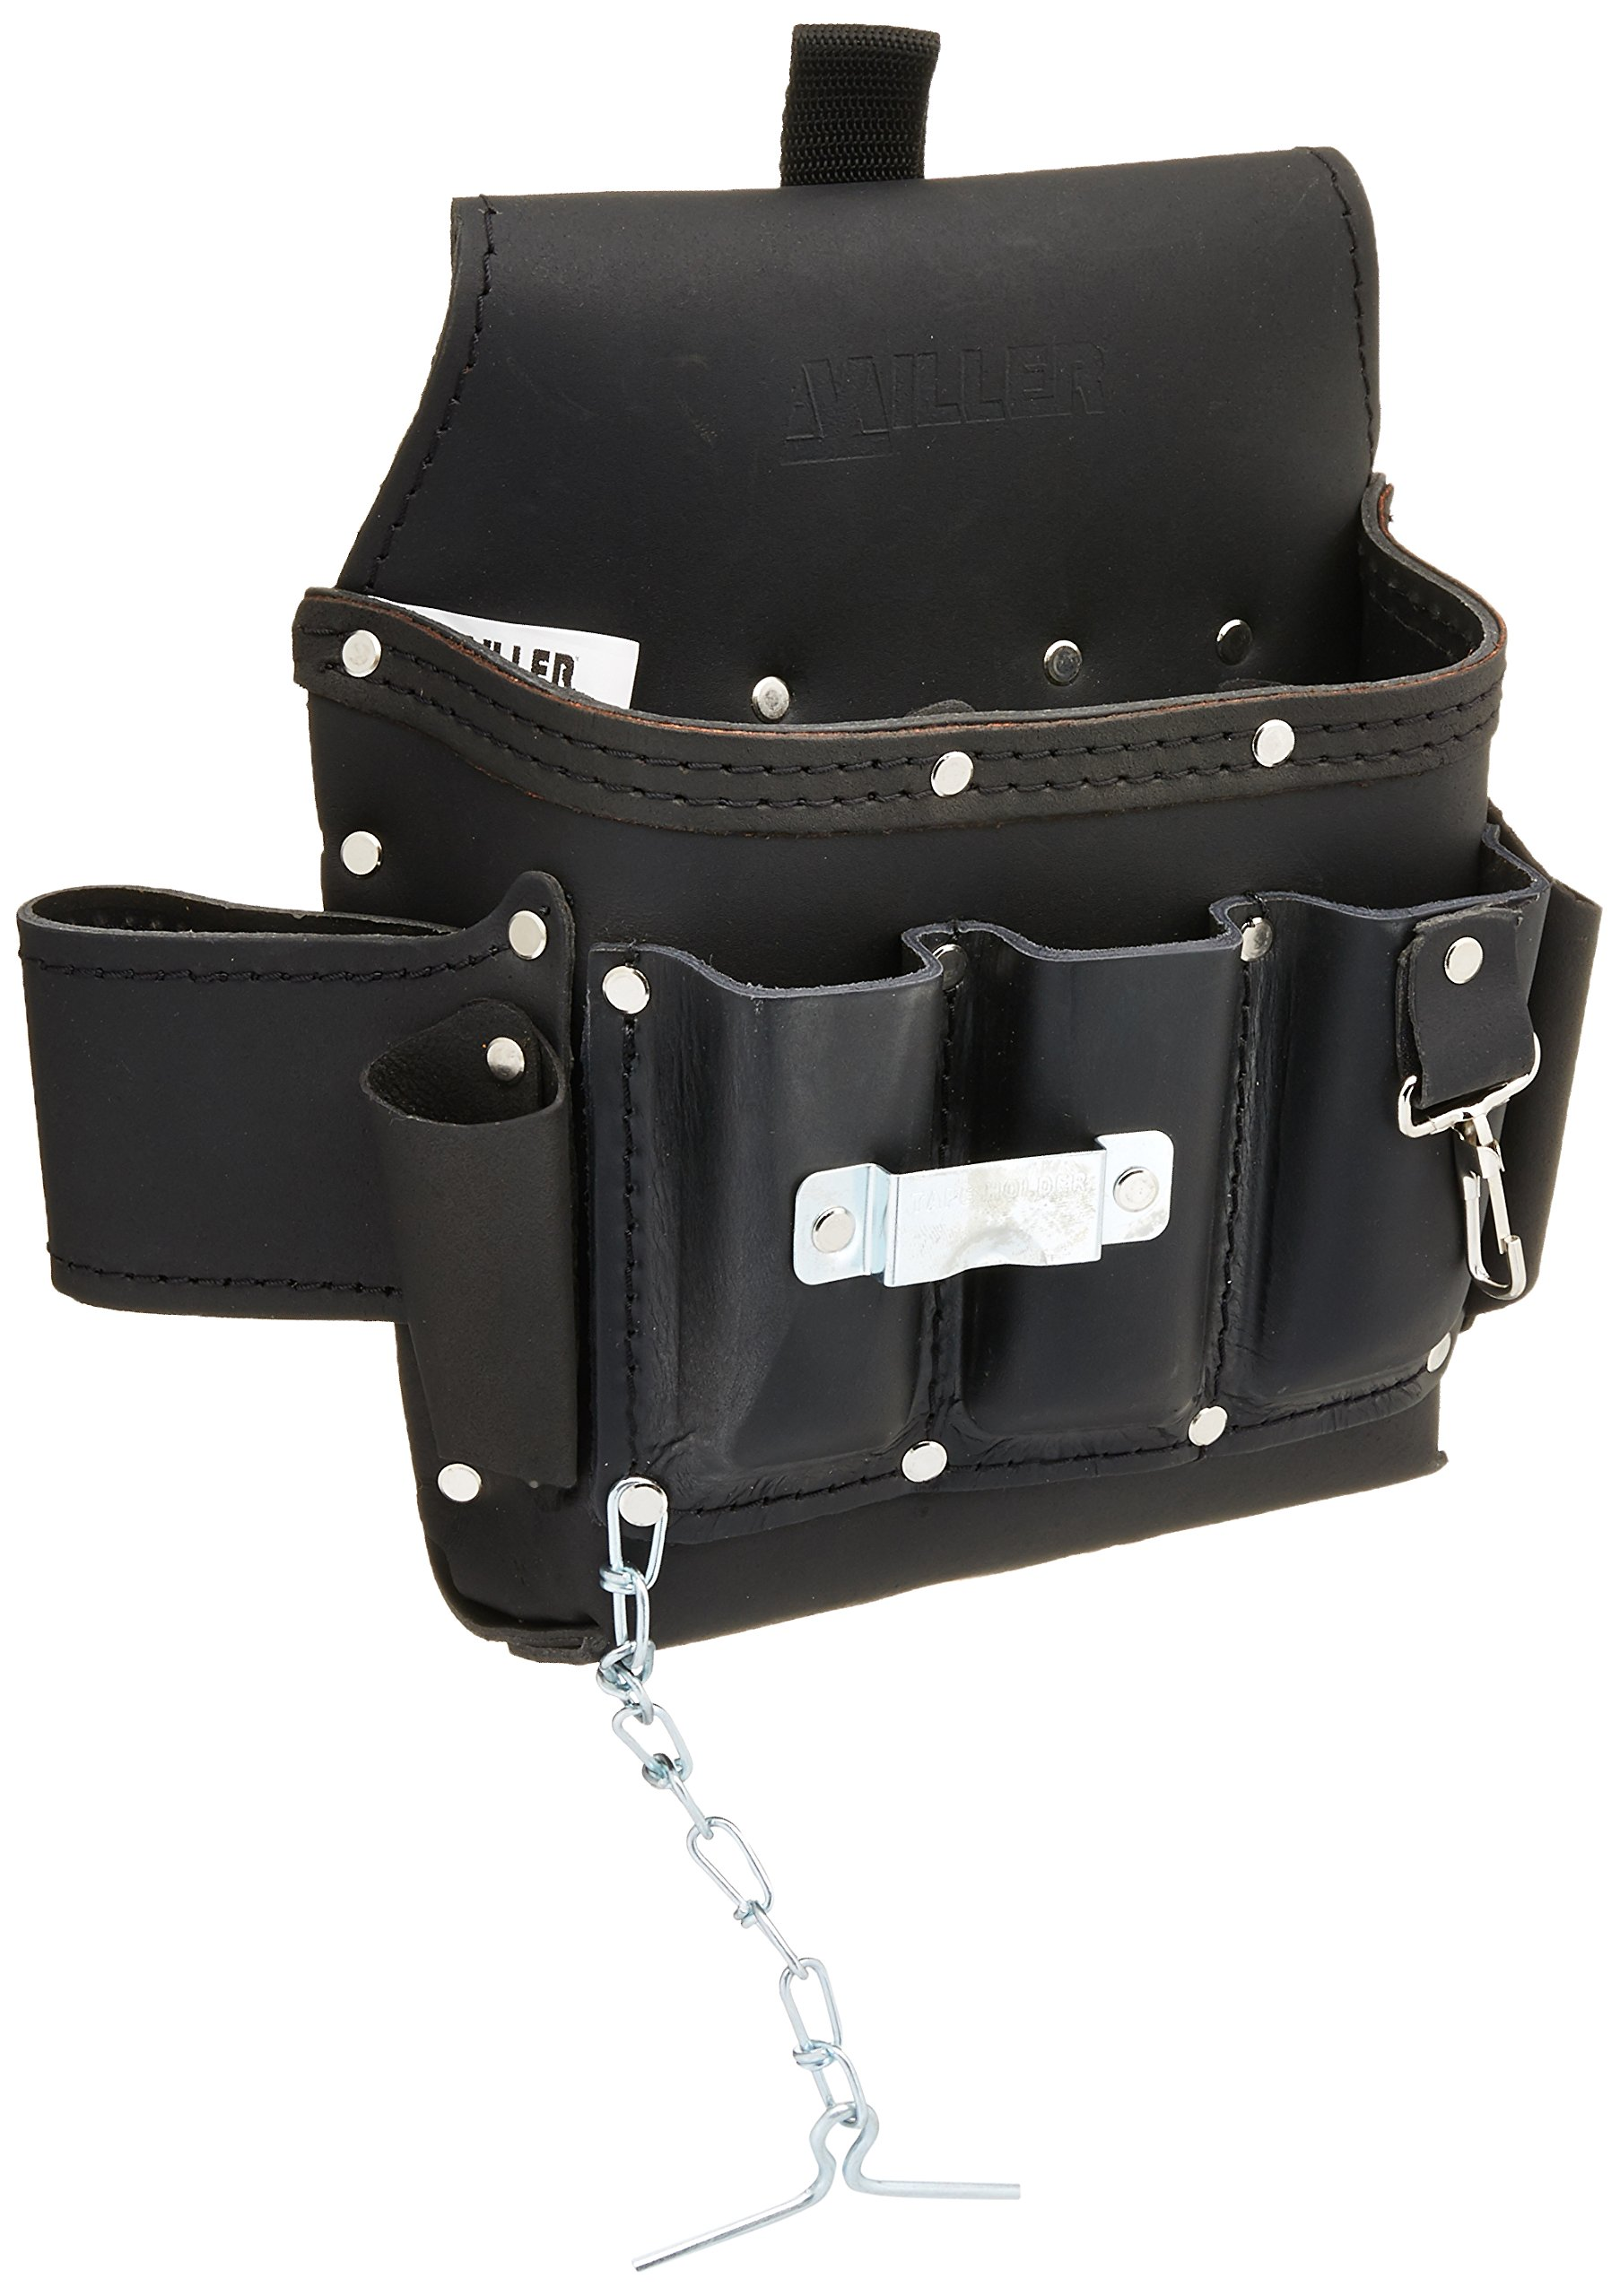 Miller RIA-T11/1 Leather Utility Tool Bag for Revolution Harness, Black by Honeywell